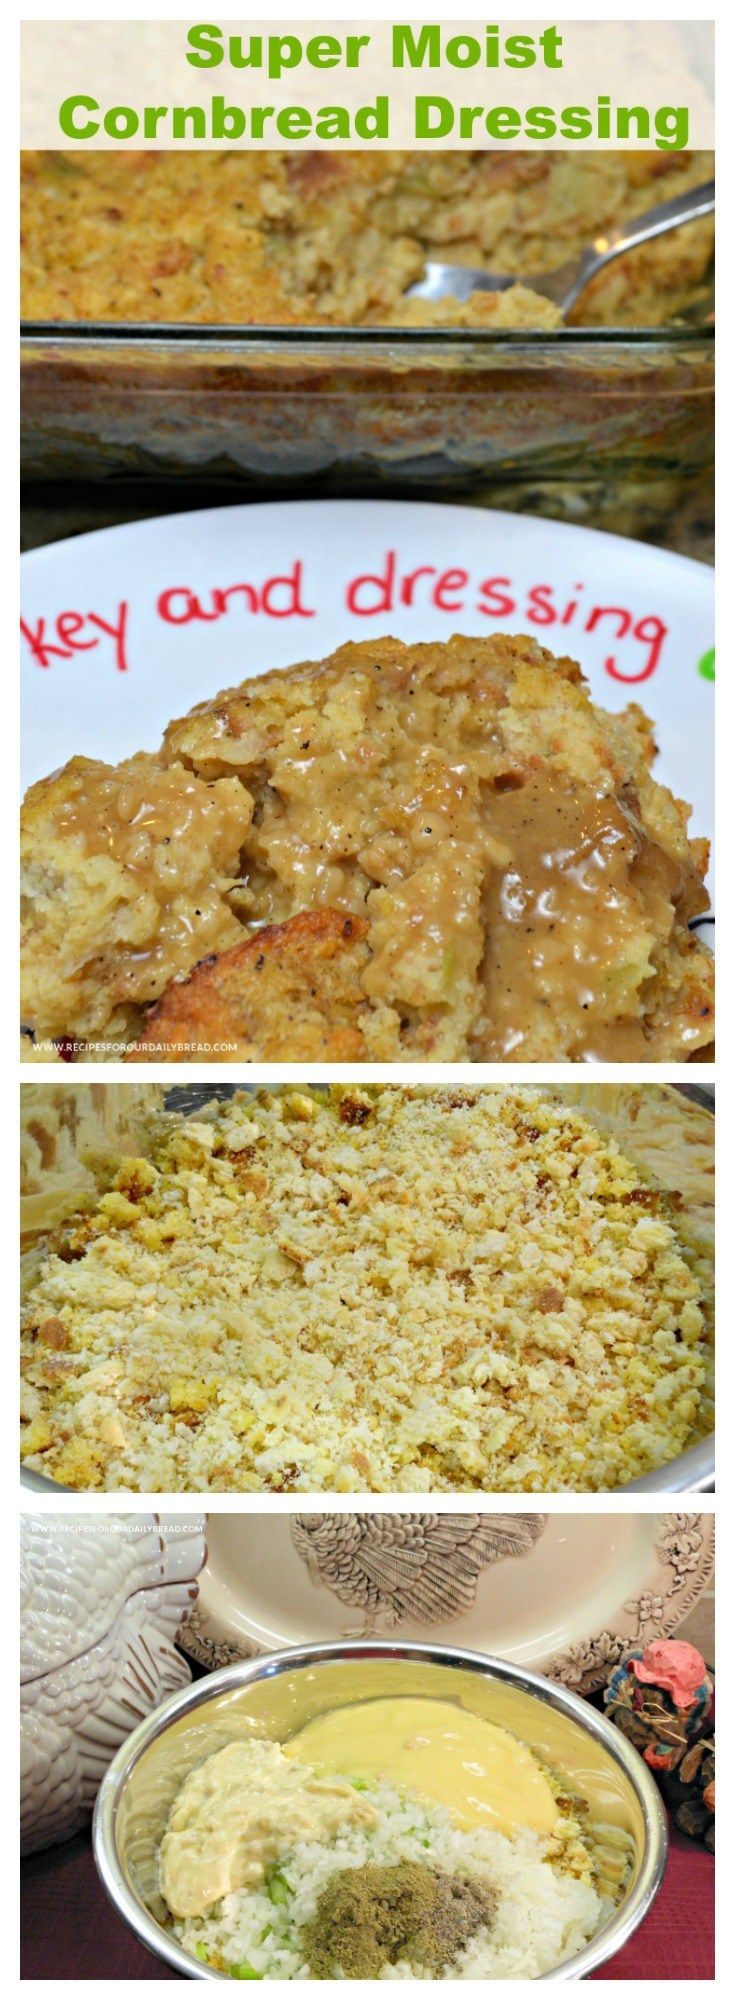 This is Super Moist Cornbread Dressing my favorite dressing. It includes cornbread, bread crumbs, celery, onion, soups, broth, eggs and poultry seasoning.